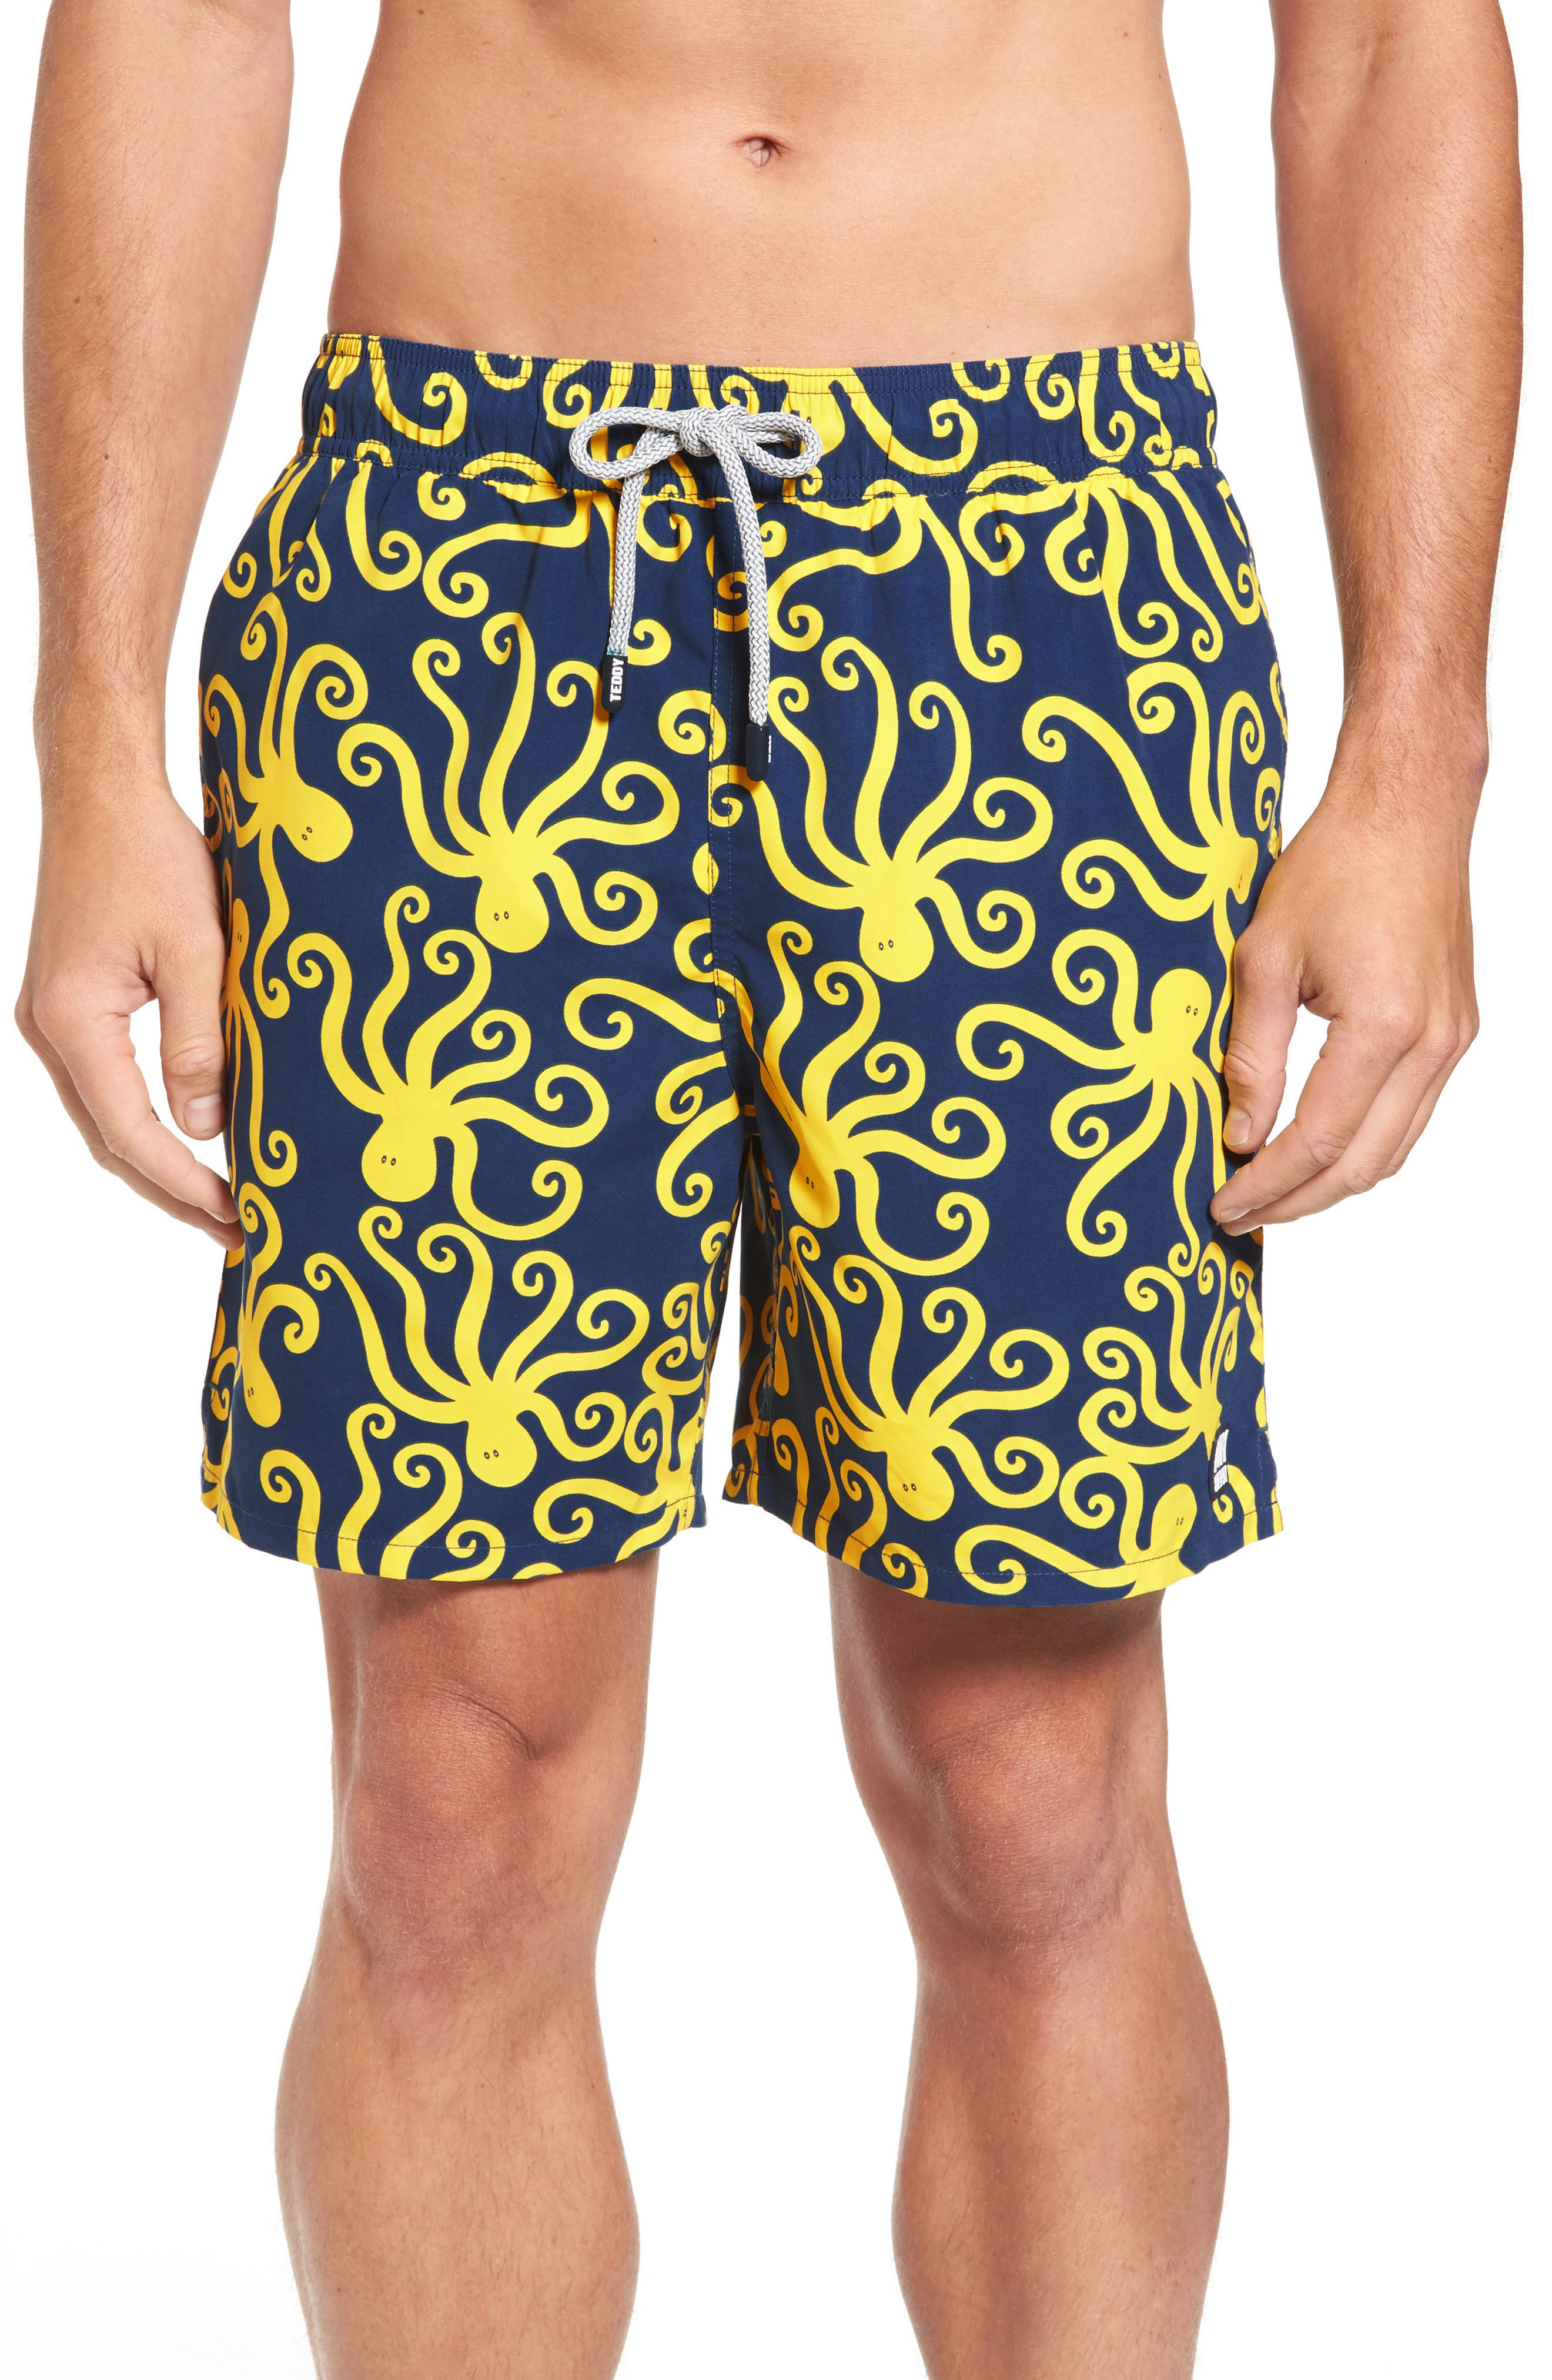 Octopus Swim Trunks,                         Main,                         color, Blue Yellow